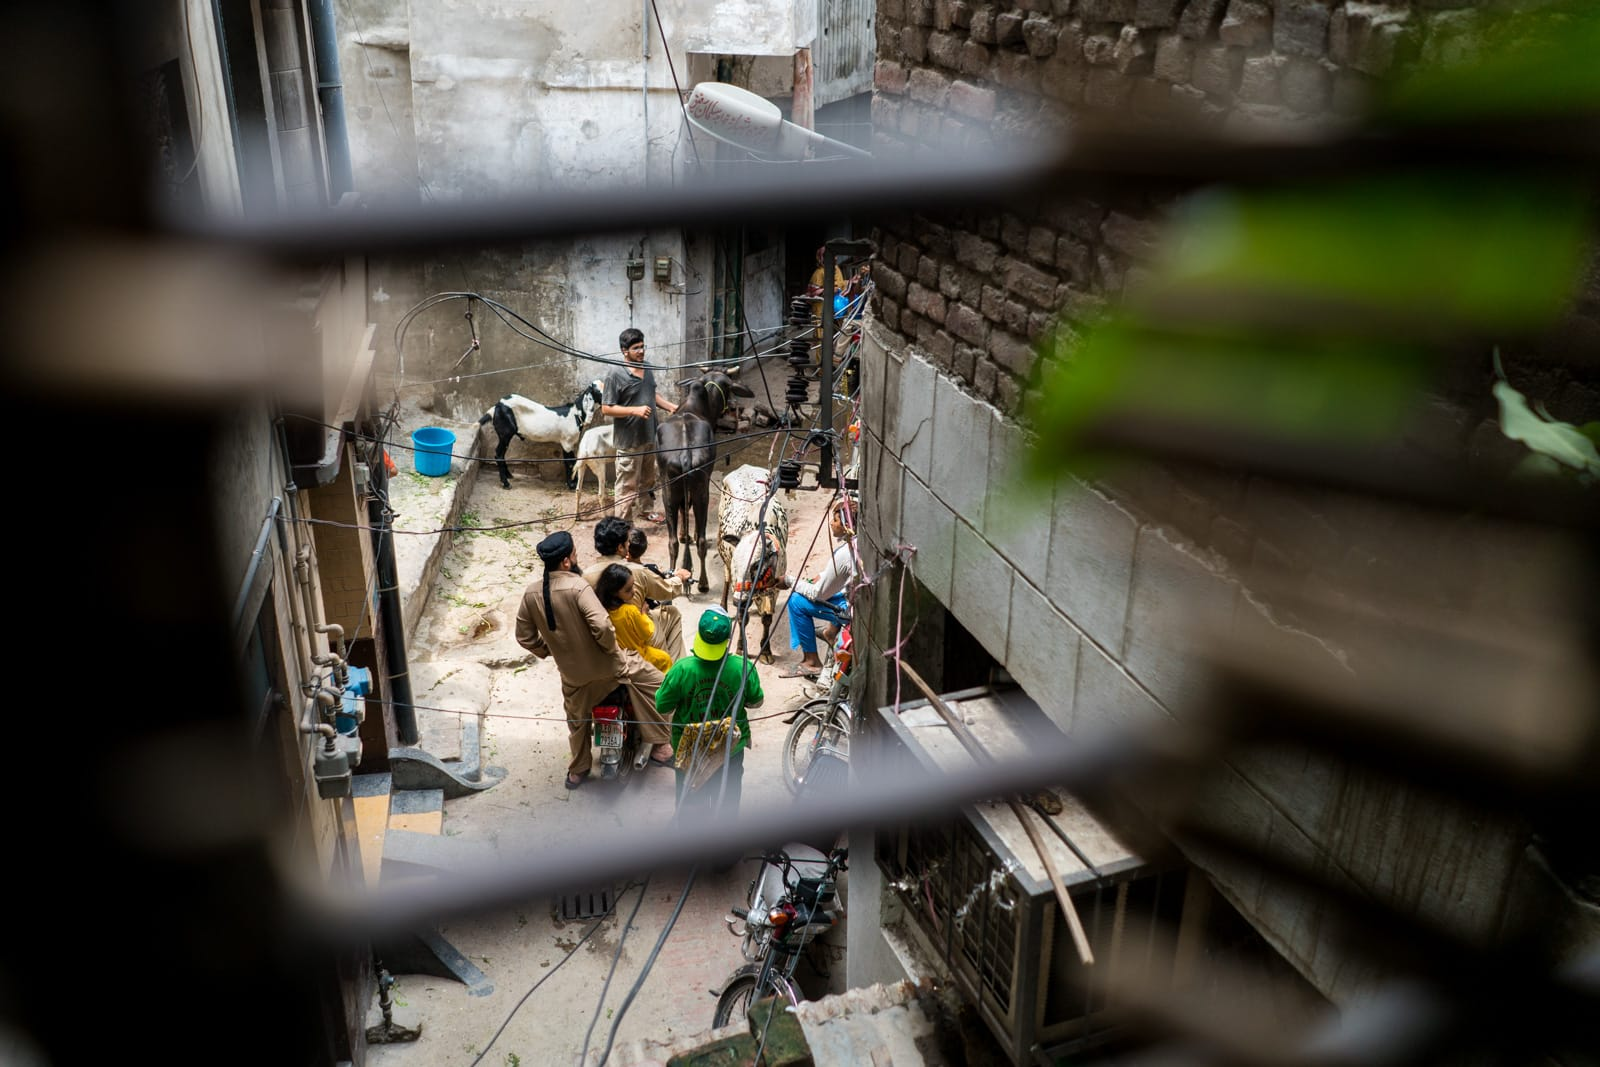 Celebrating Eid al-Adha in Lahore, Pakistan - Looking down on the streets from a haveli - Lost With Purpose travel blog